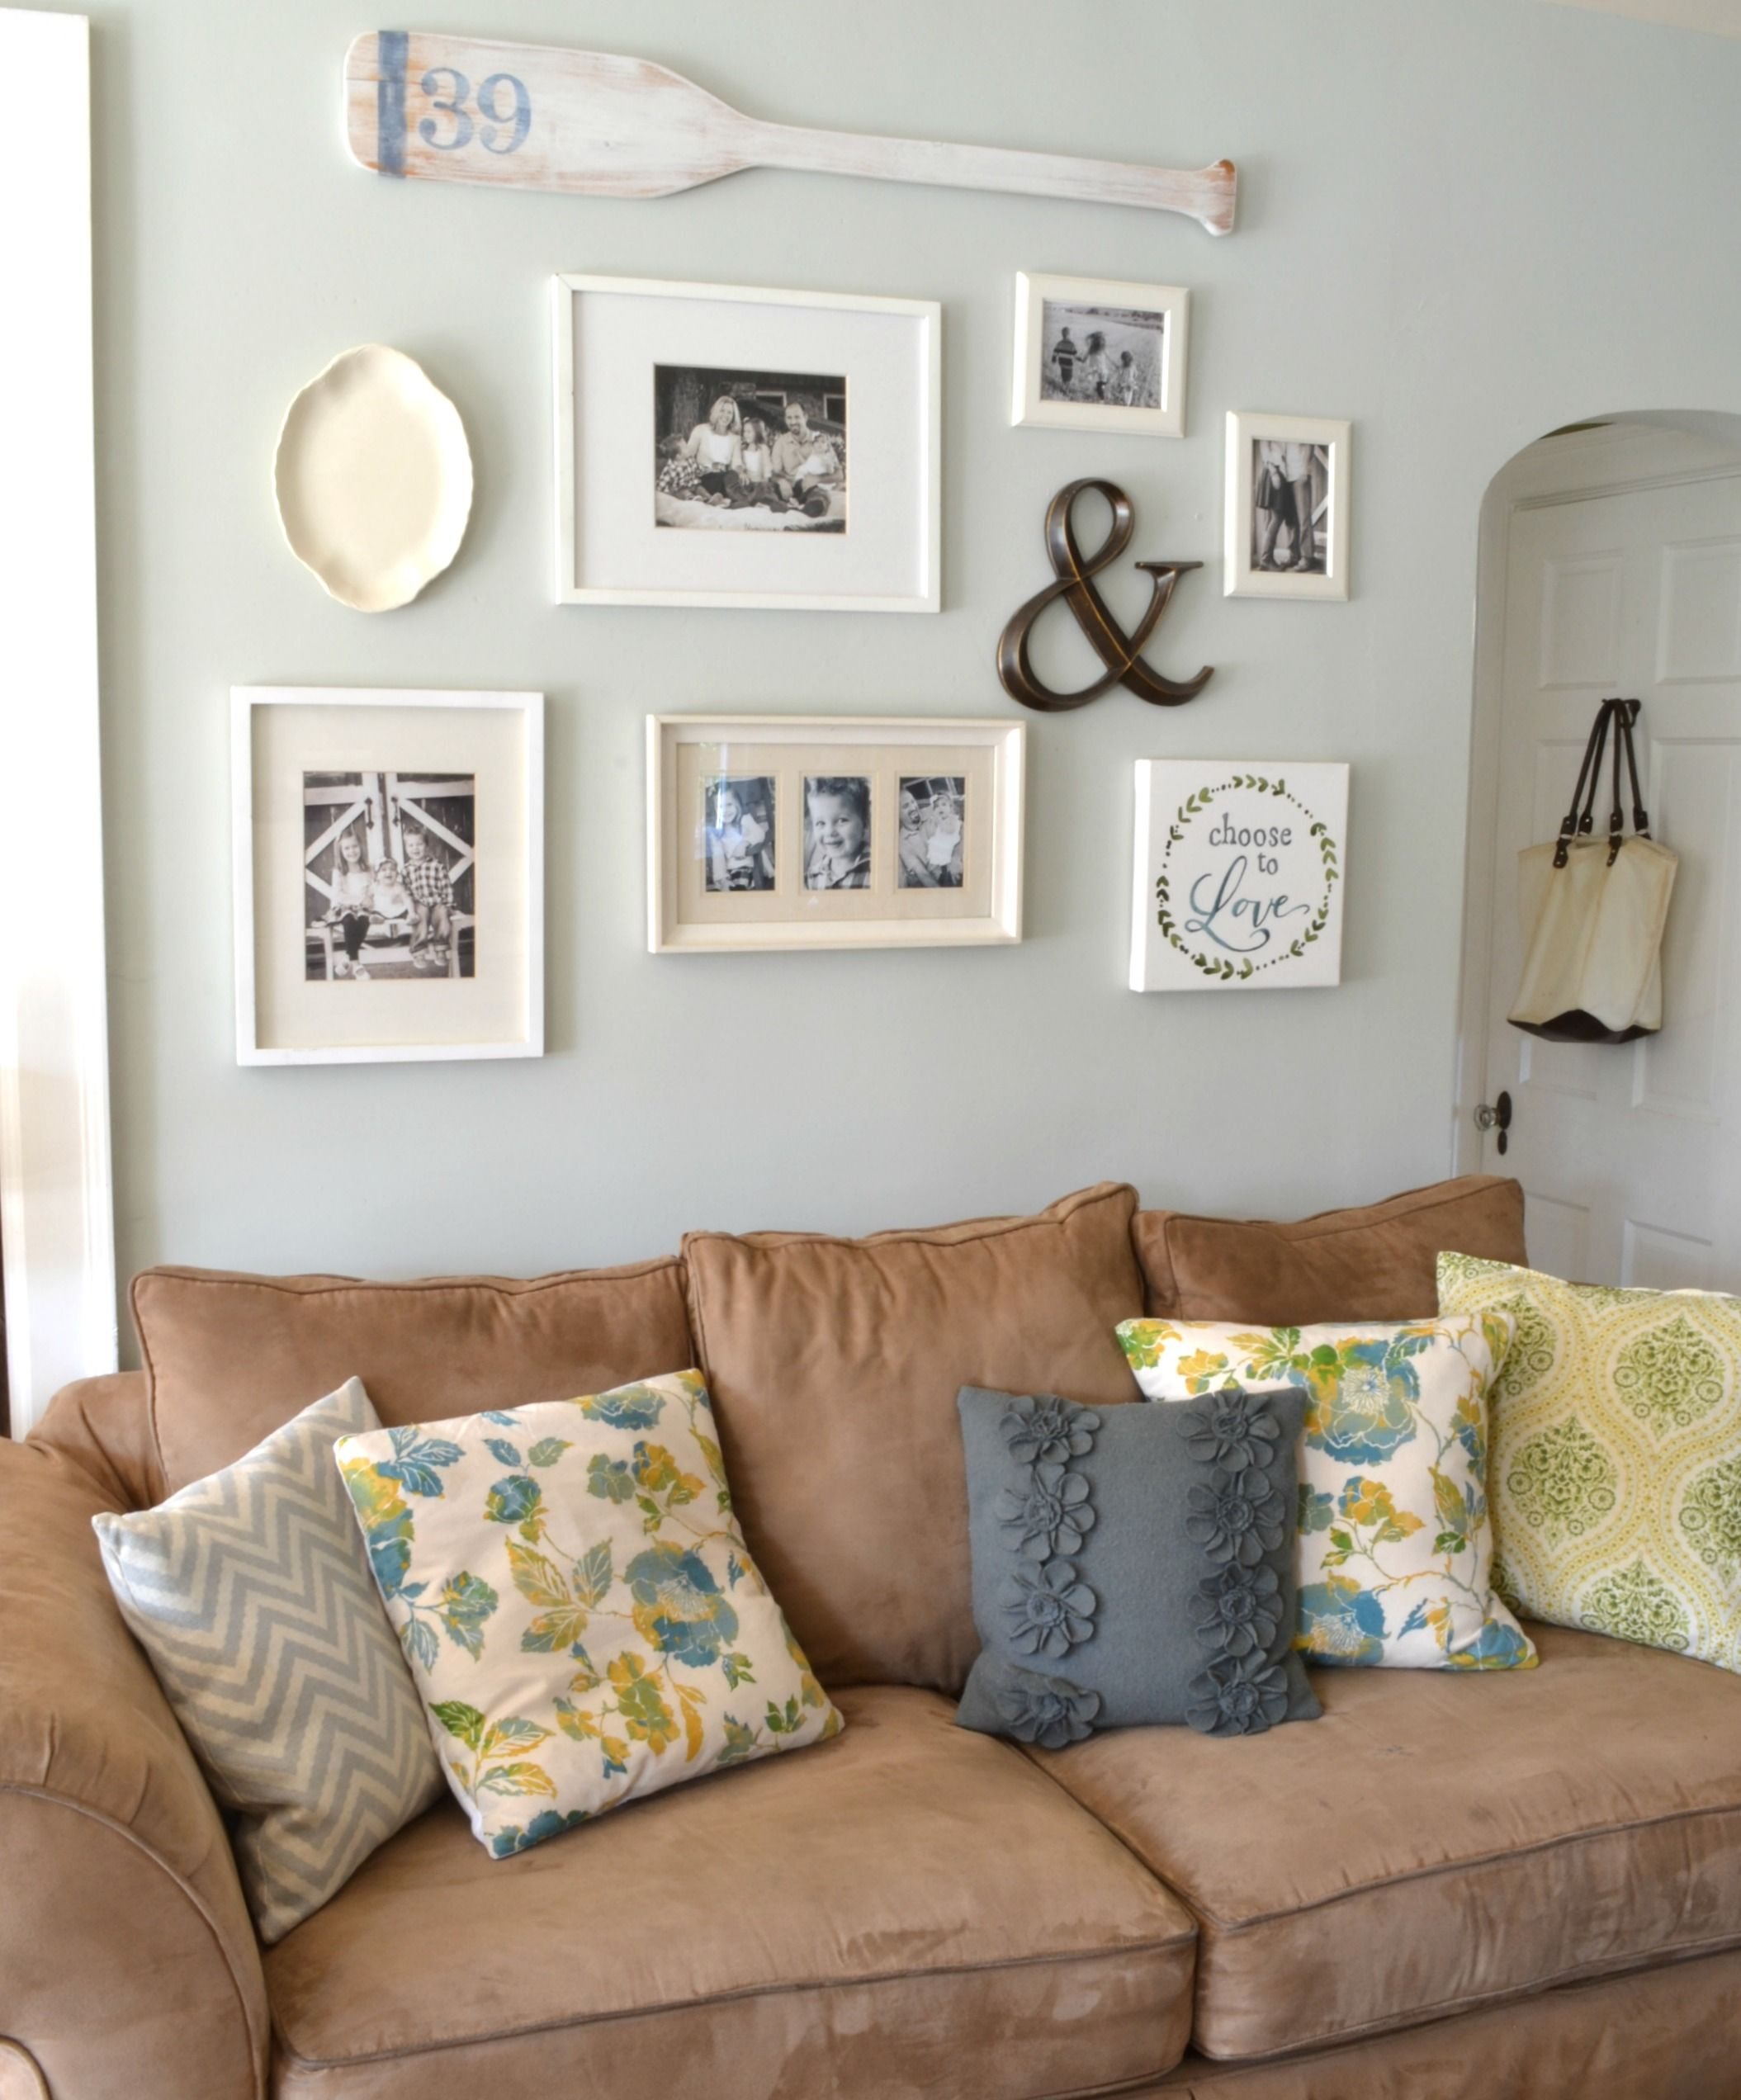 wall gallery ideas above couch Google Search Rustic